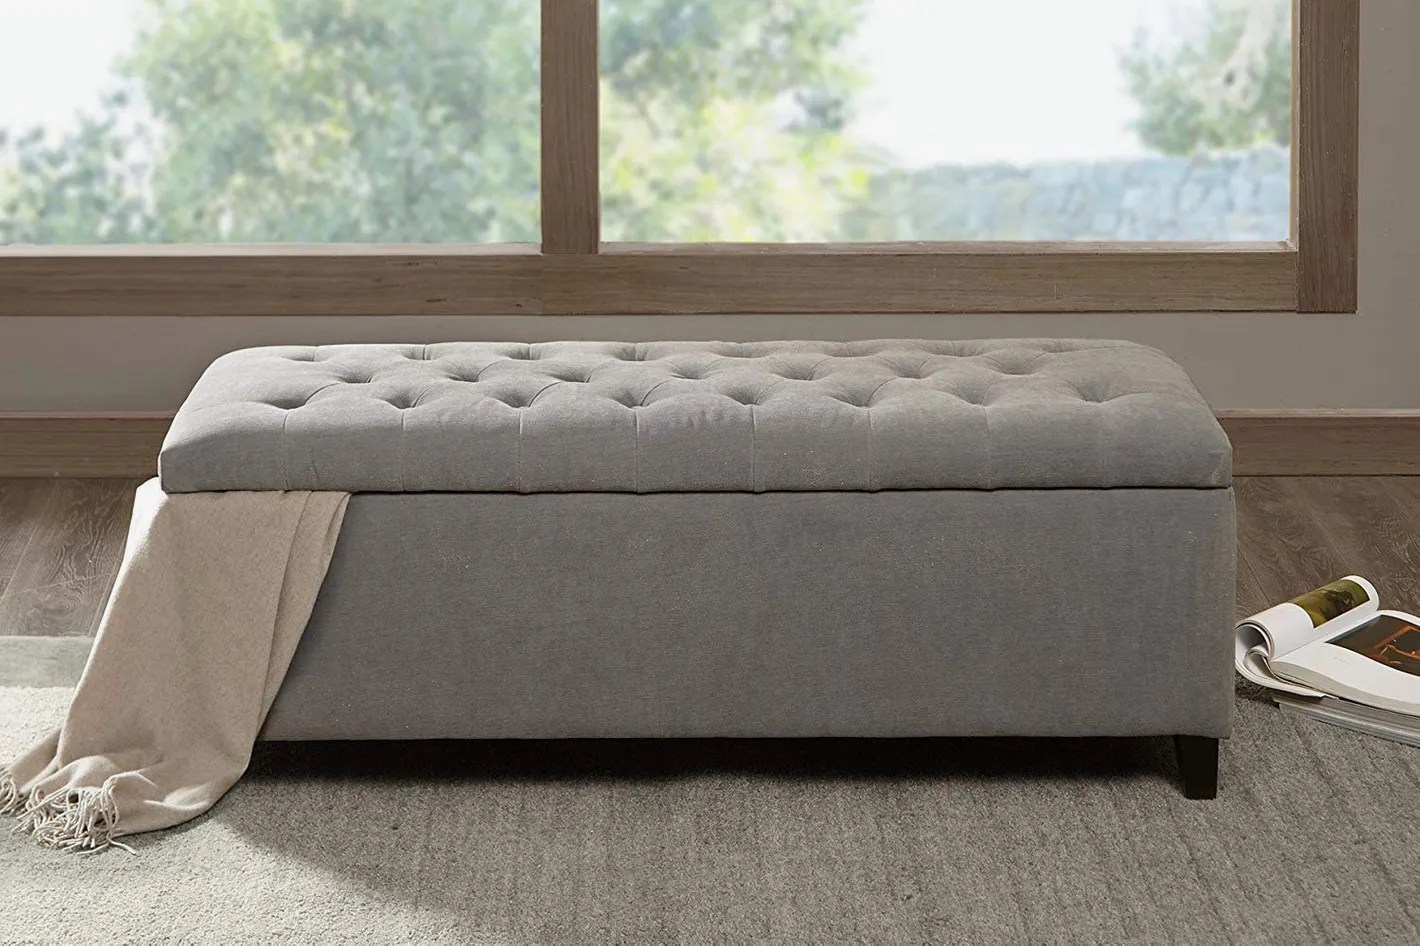 Seating With Storage Underneath Madison Park Shandra Tufted Top Storage Bench Grey